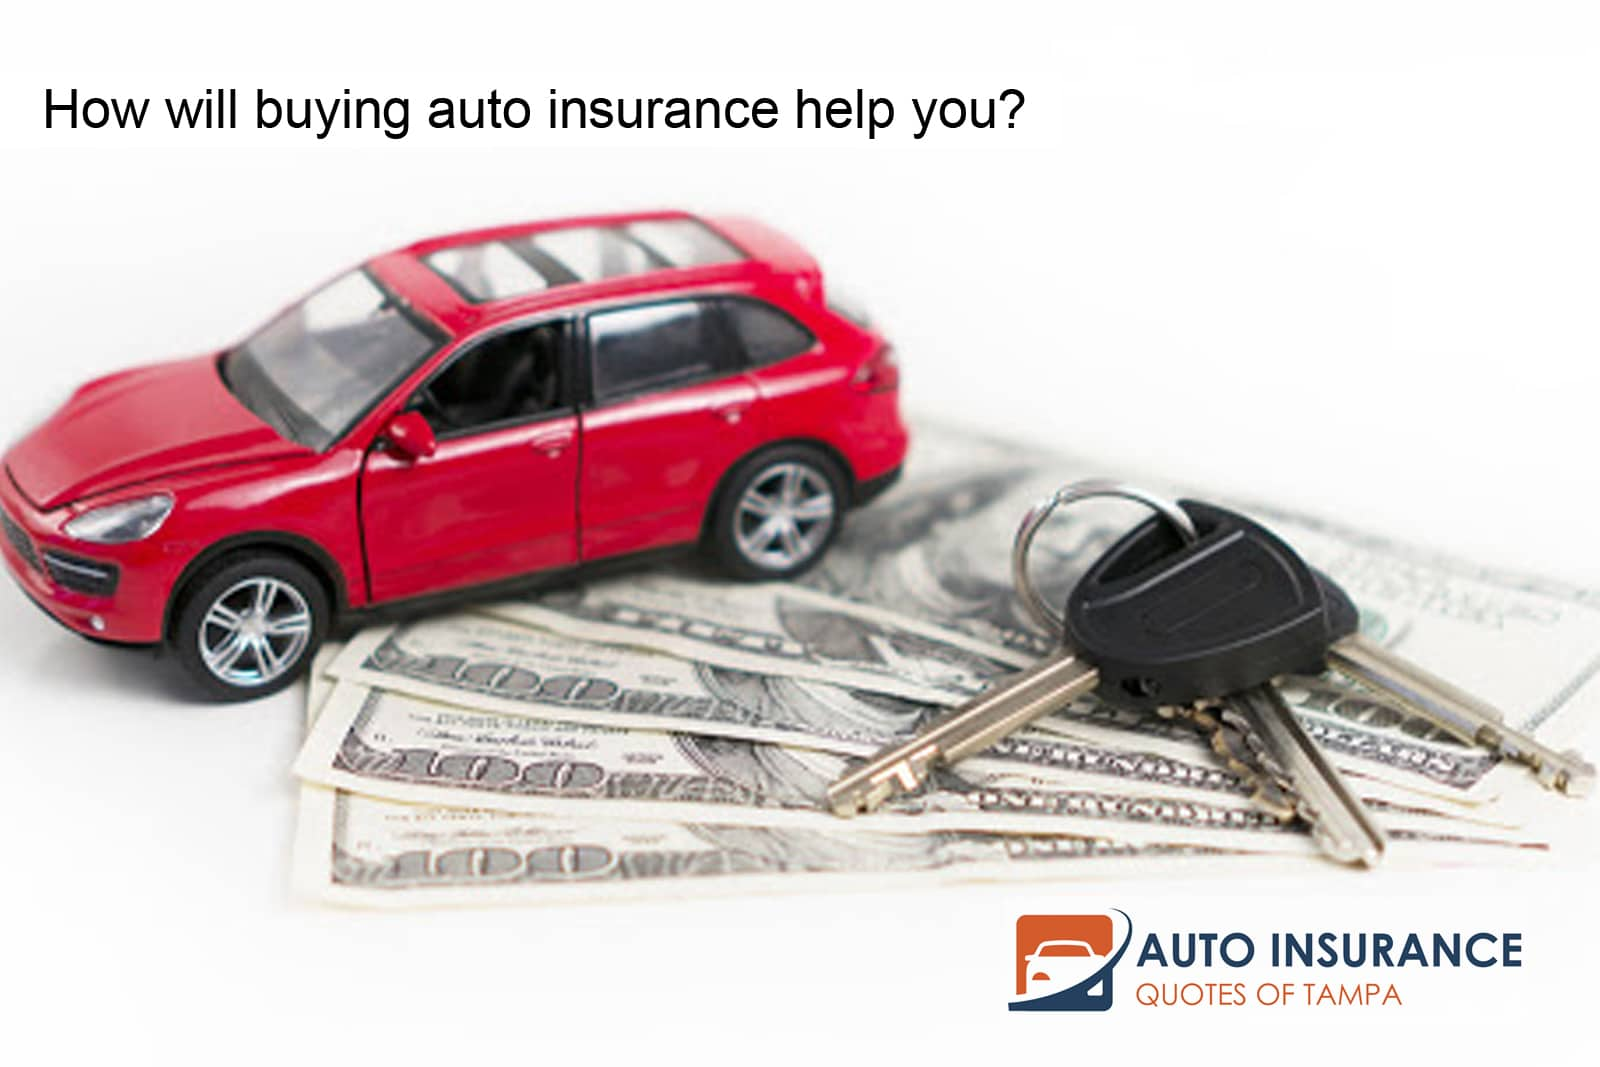 How will buying auto insurance help you?